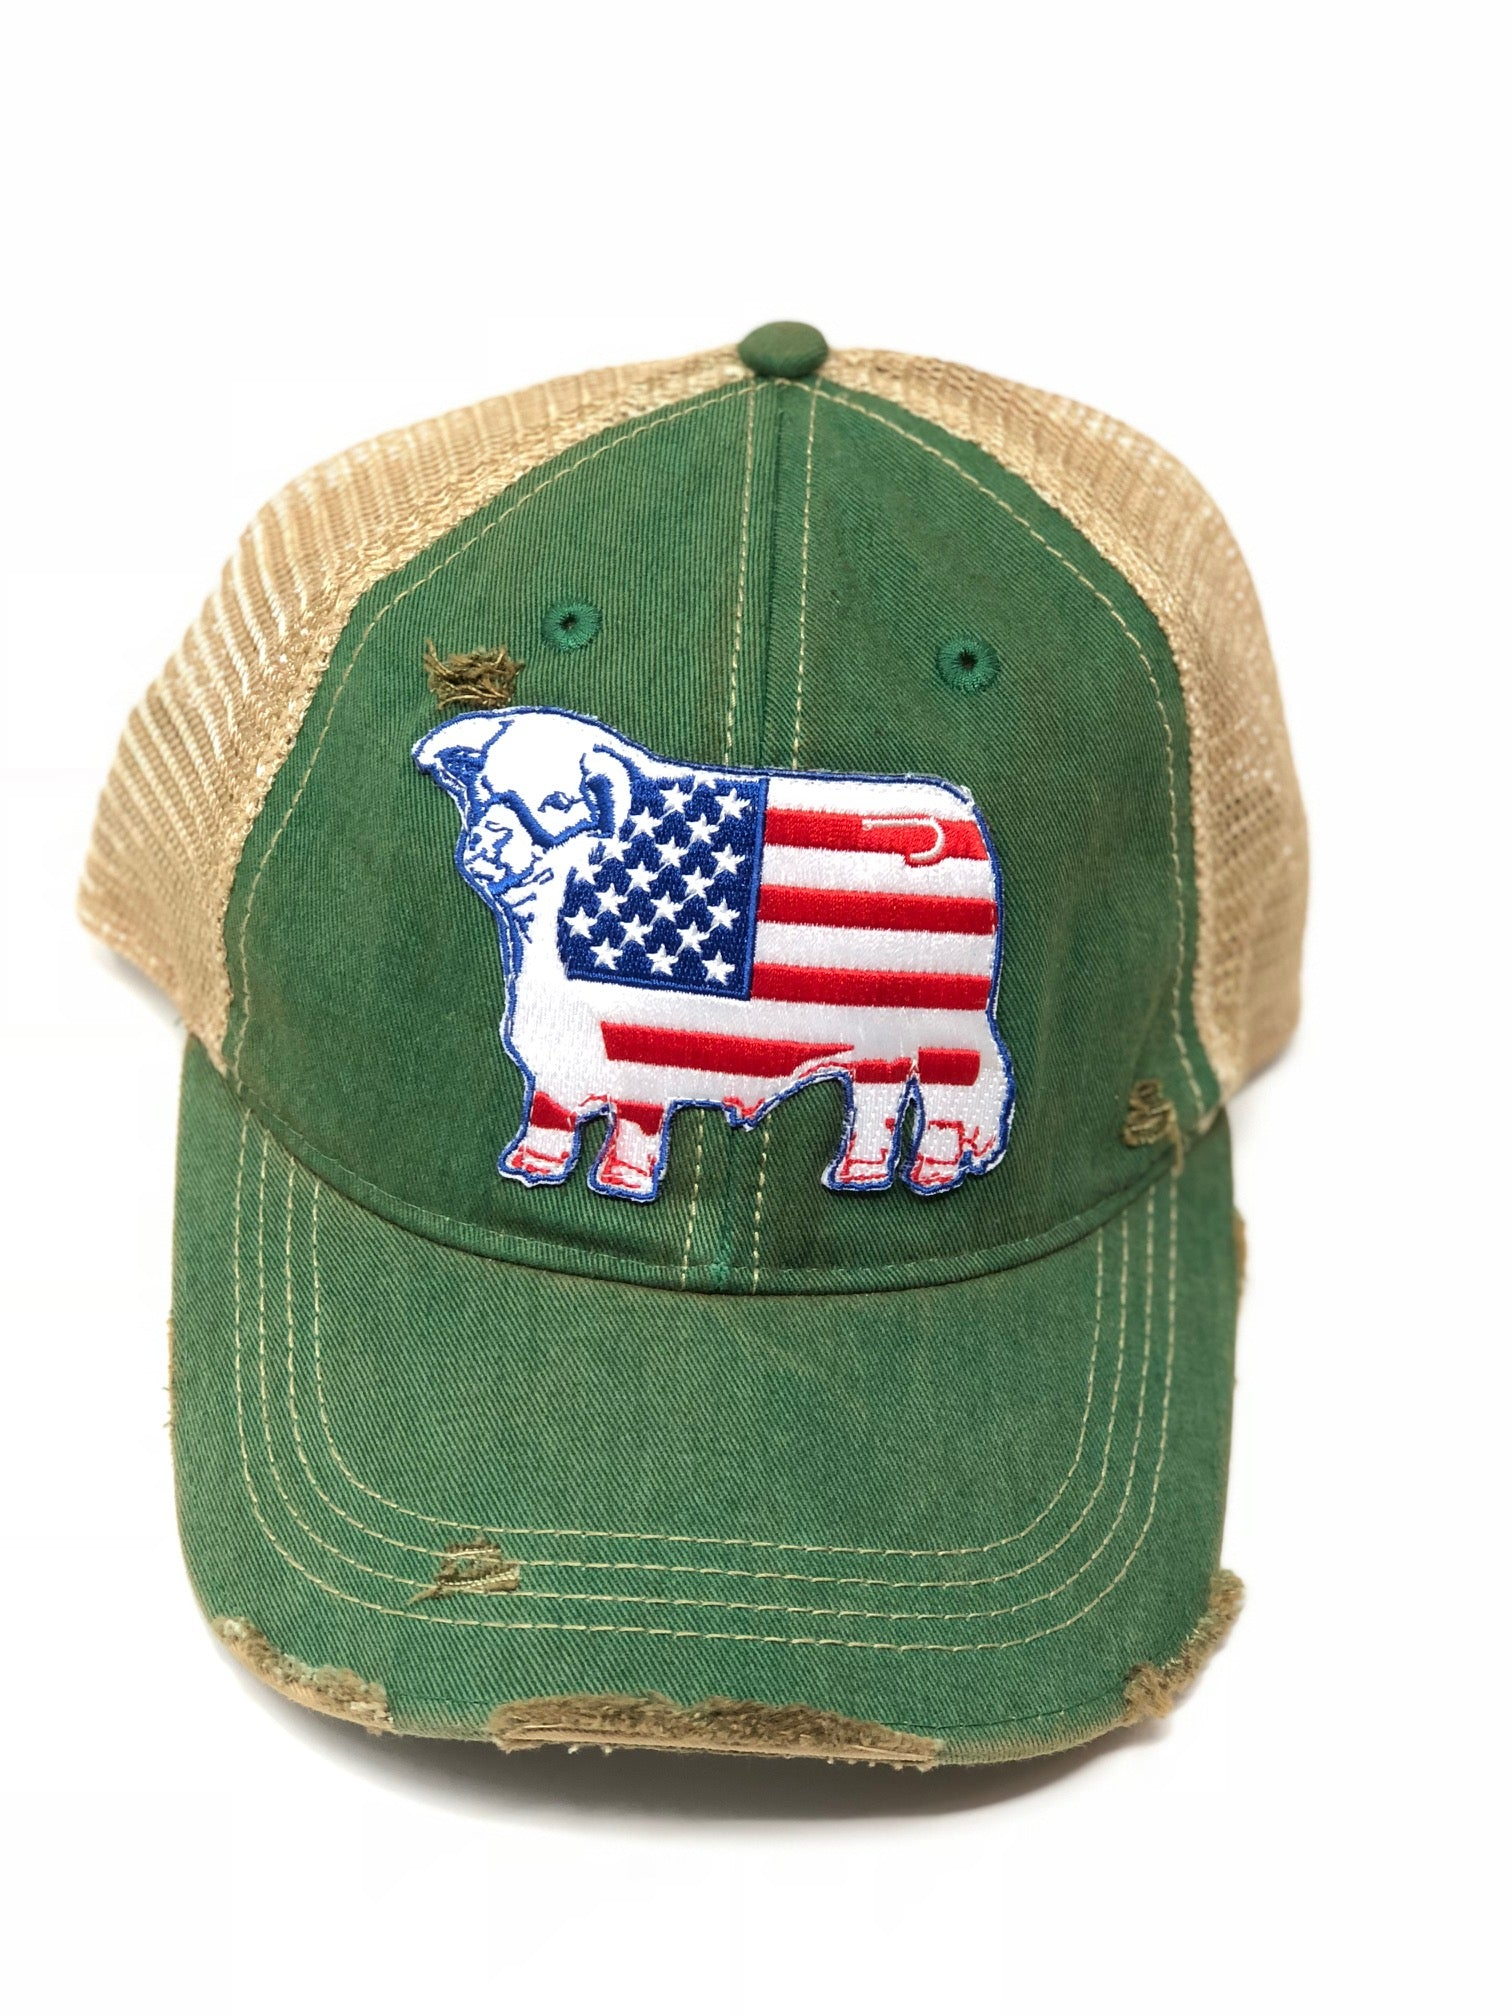 Lazy J Kelly Green & Tan Unstructured American Flag Patch Cap